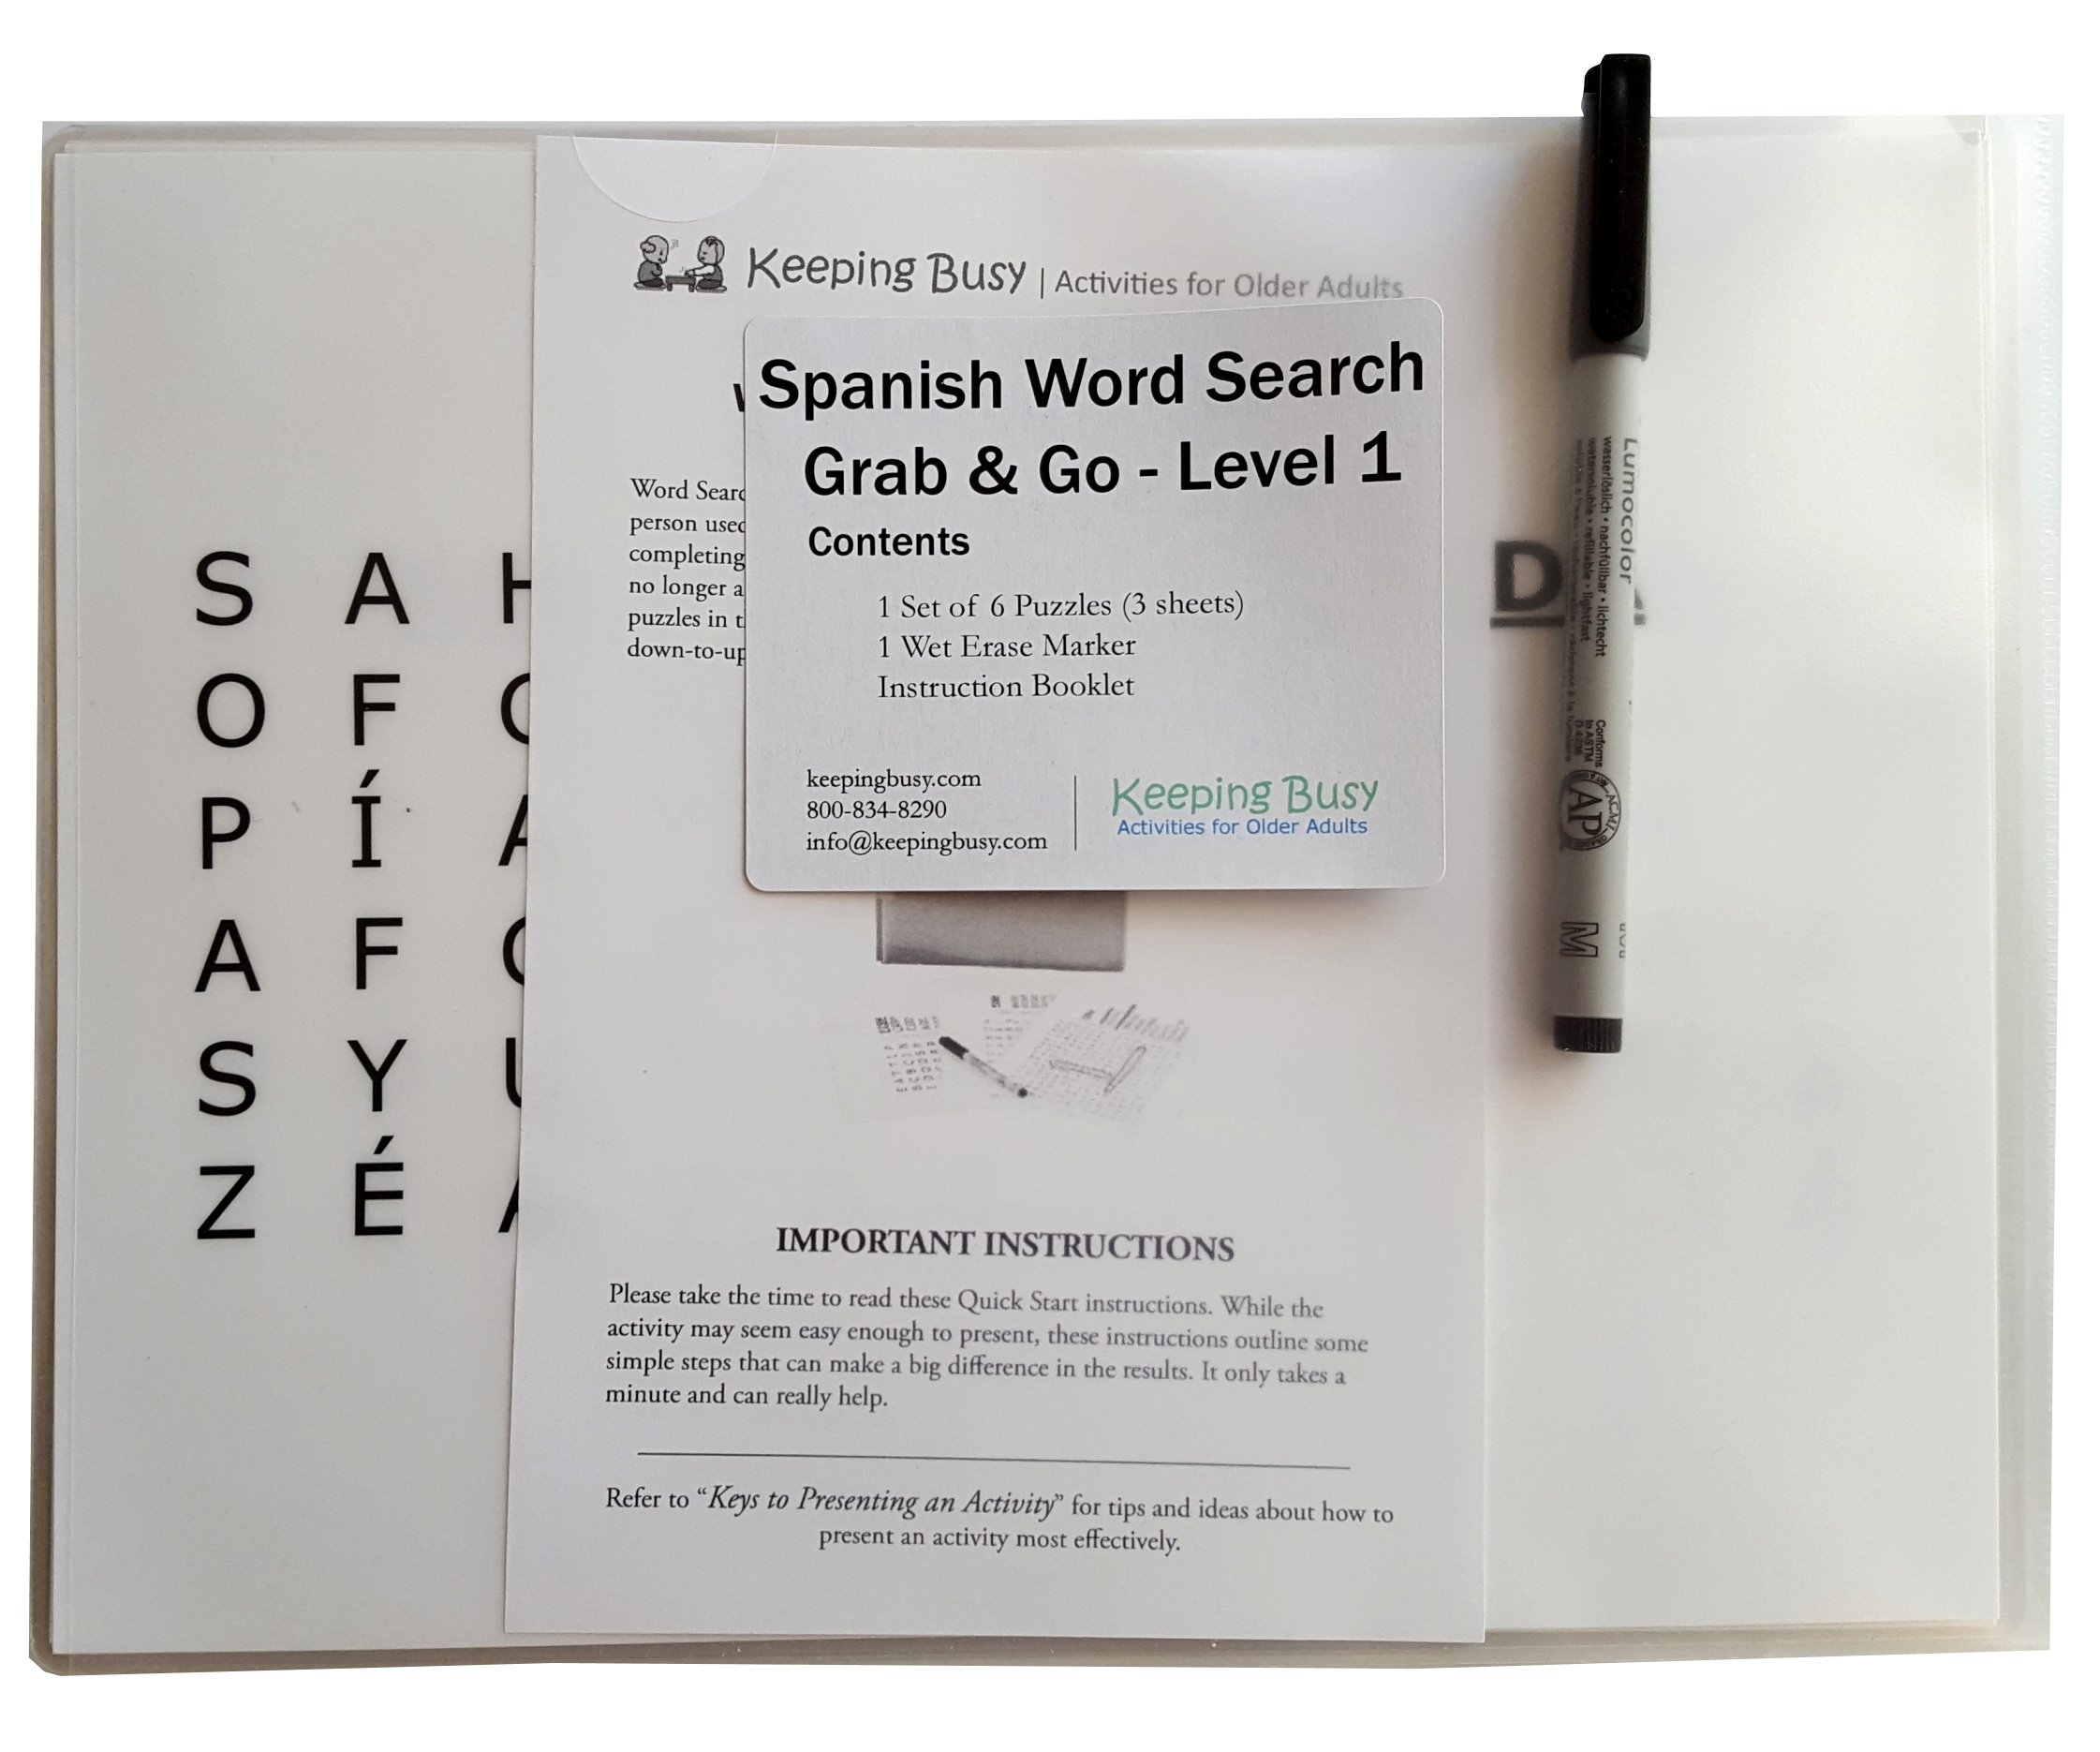 Keeping Busy Nivel 1 (Fácil) Spanish Word Search Dementia and Alzheimer's Grab & Go Engaging Activity for Older Adults by Keeping Busy (Image #2)